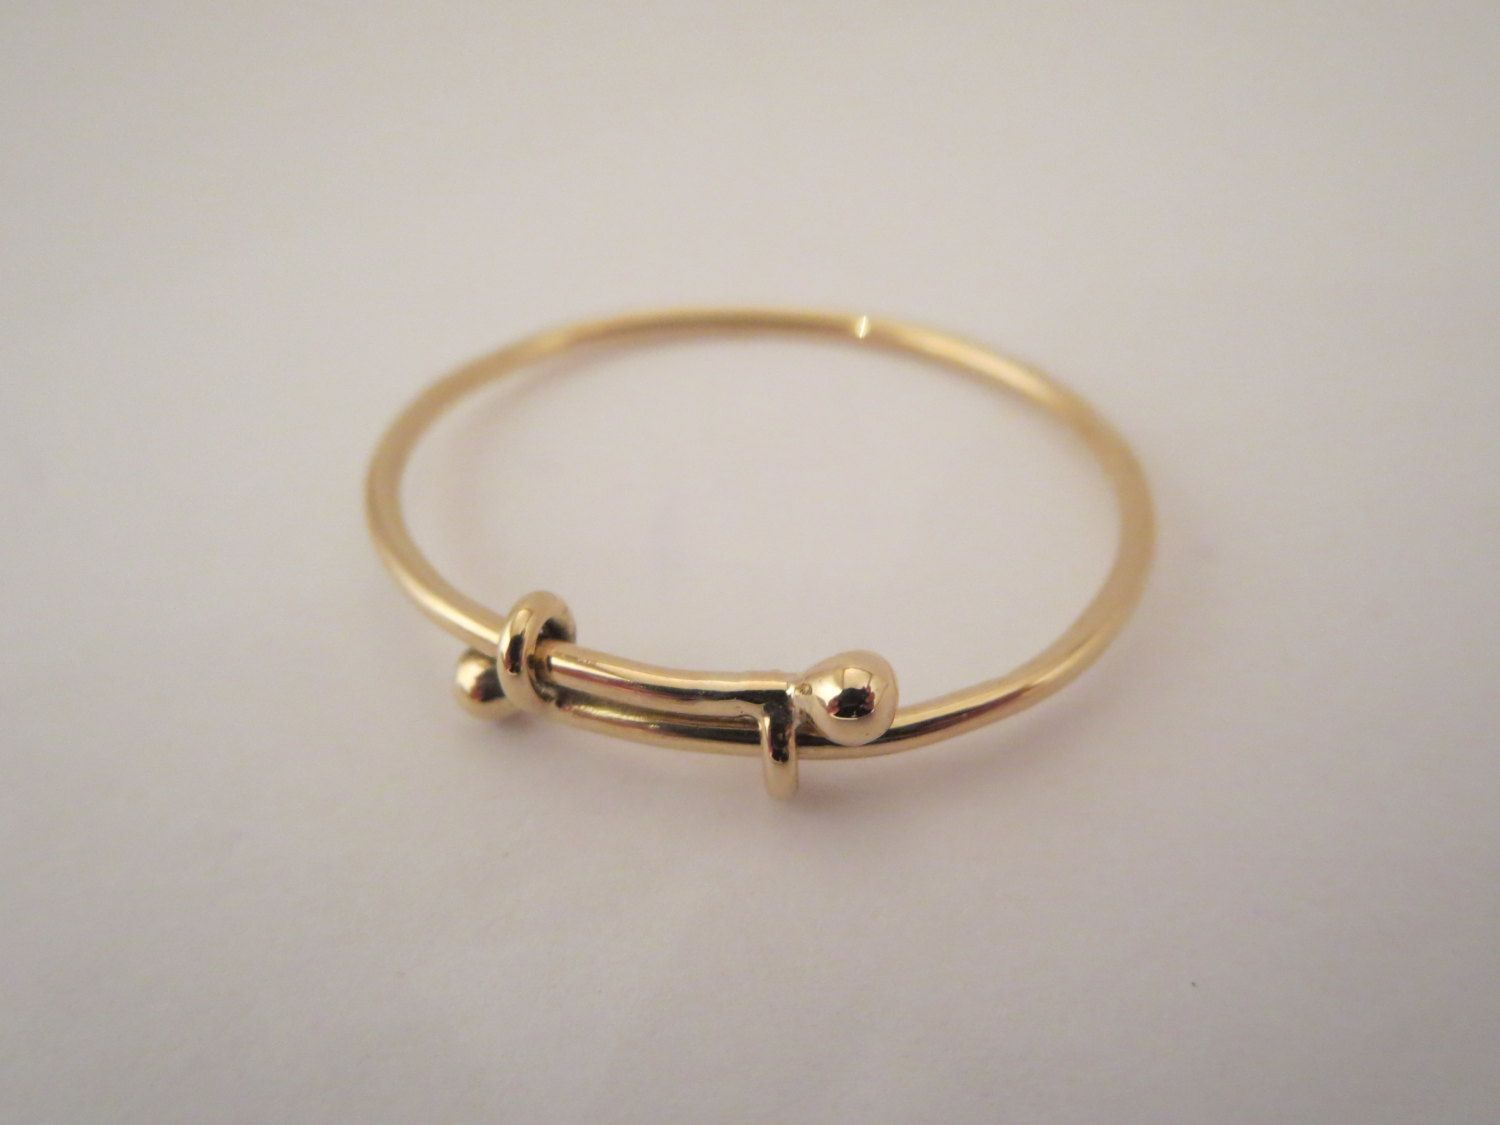 Baby gift jewelry bracelet k gold bangle expendable birth